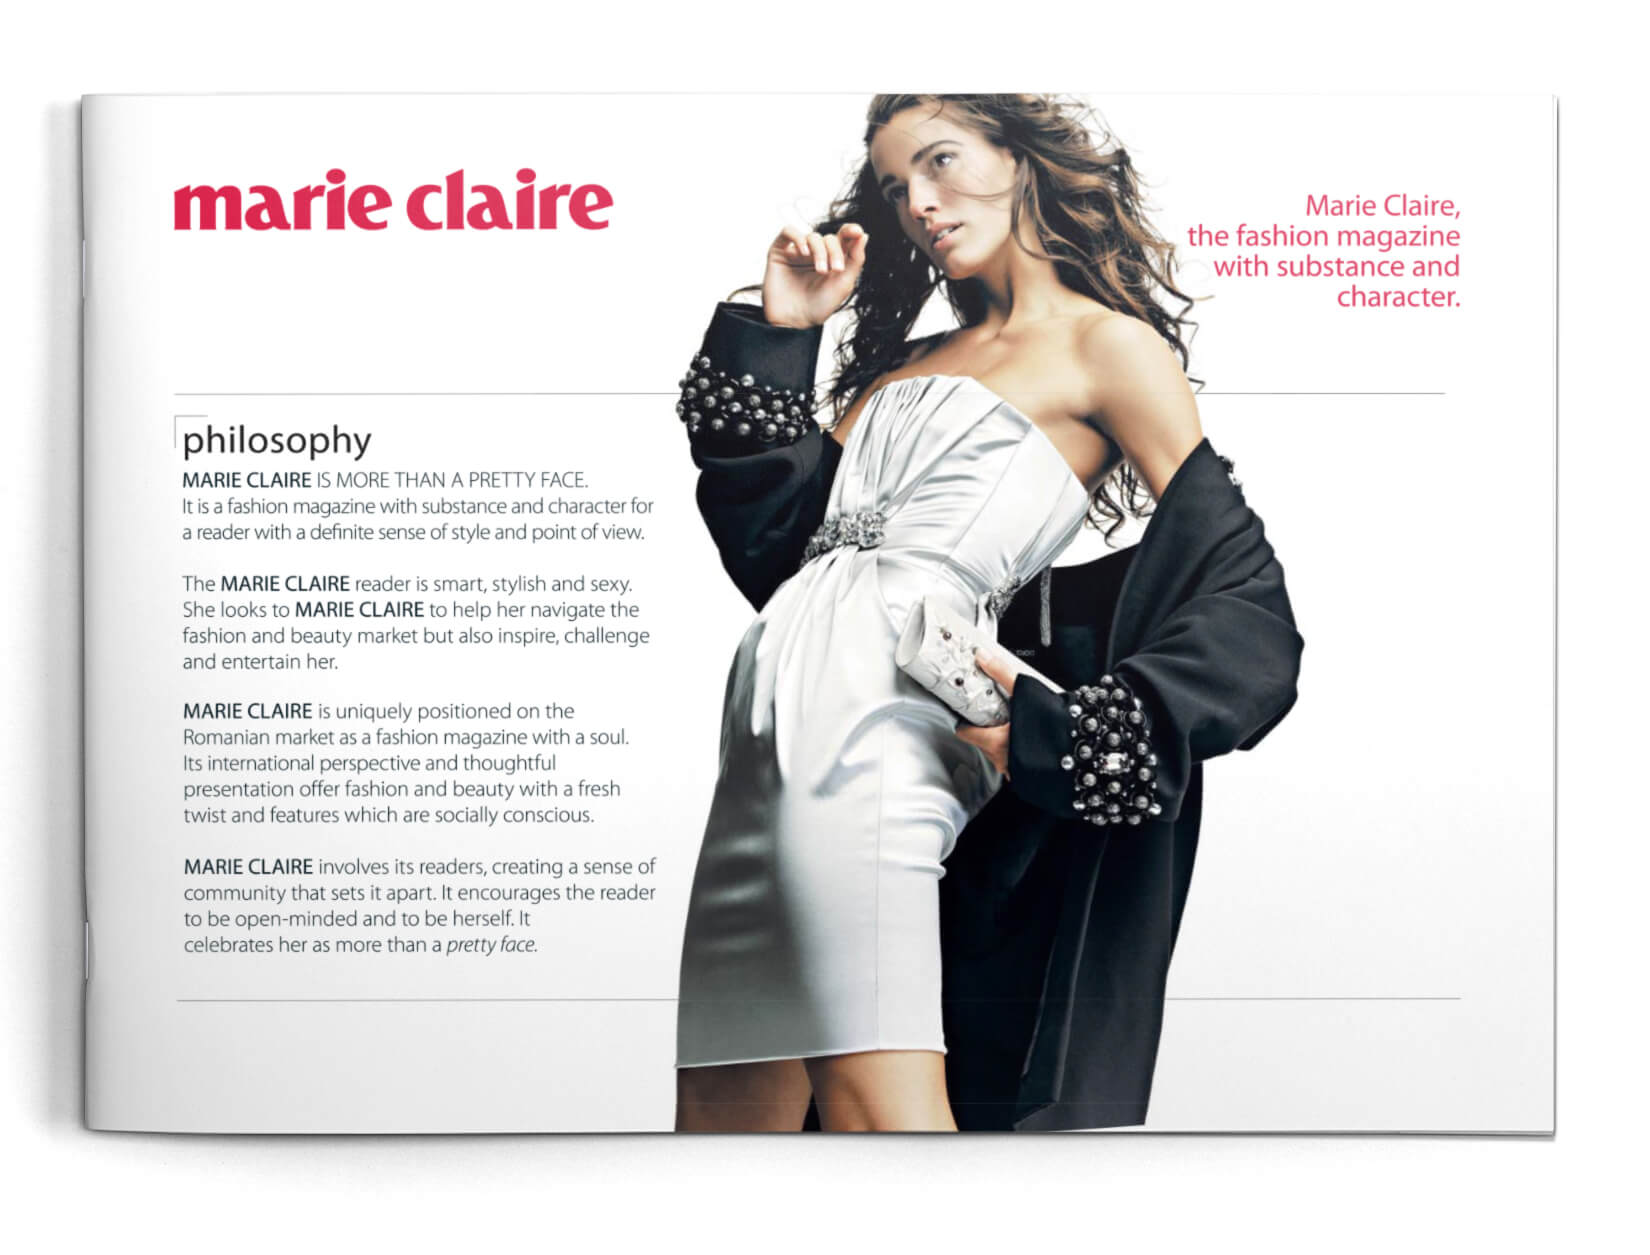 mediakit-marieclaire-cover-5